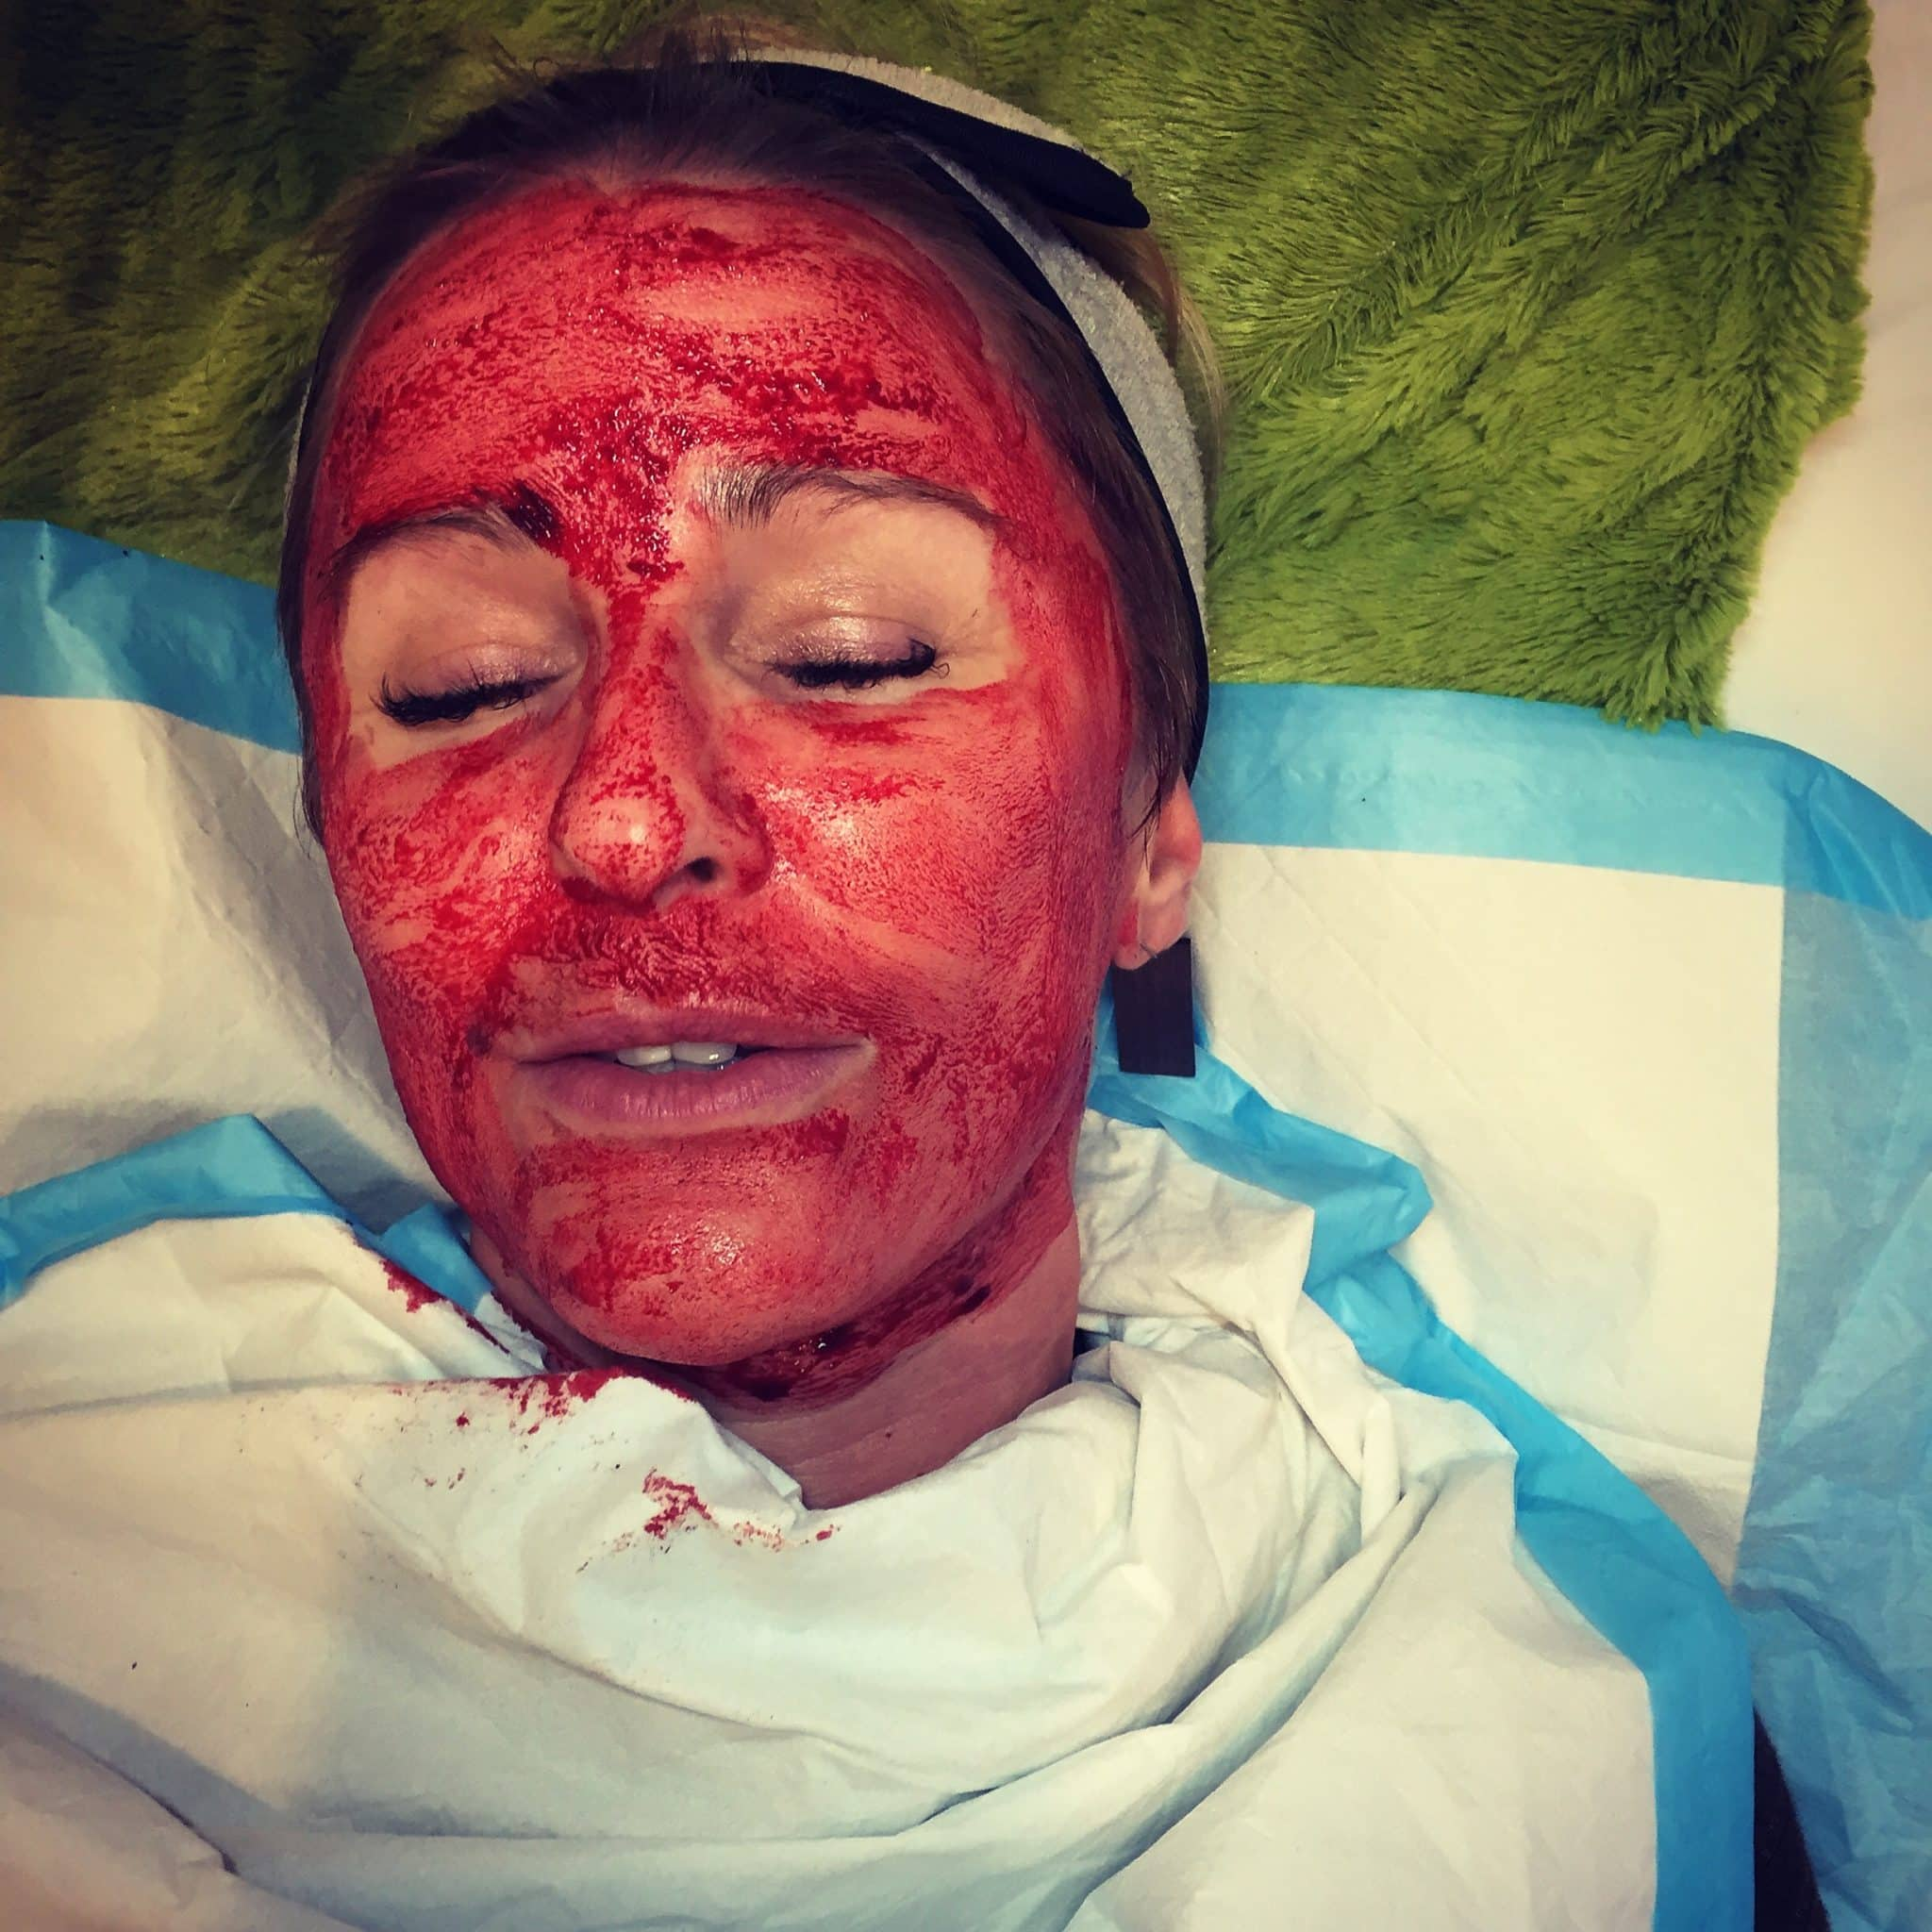 Dominique undergoing the Vampire Facial in Seattle. The vampire facial is MicroNeedling with Platelet Rich Plasma (PRP) applied topically.